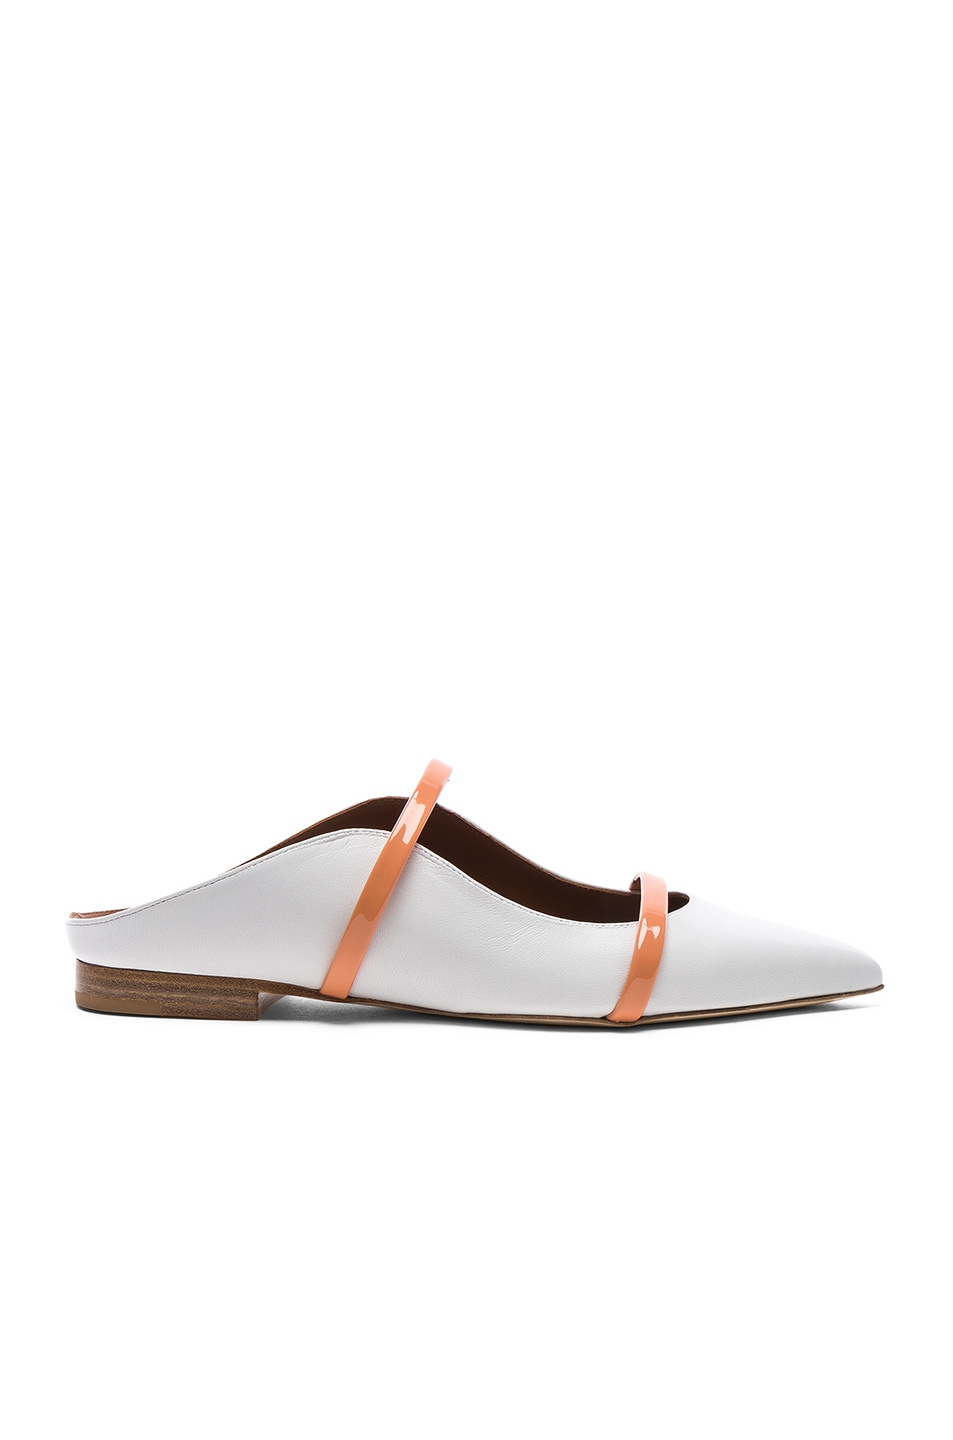 Image 1 of Malone Souliers Maureen Flat in White & Peach